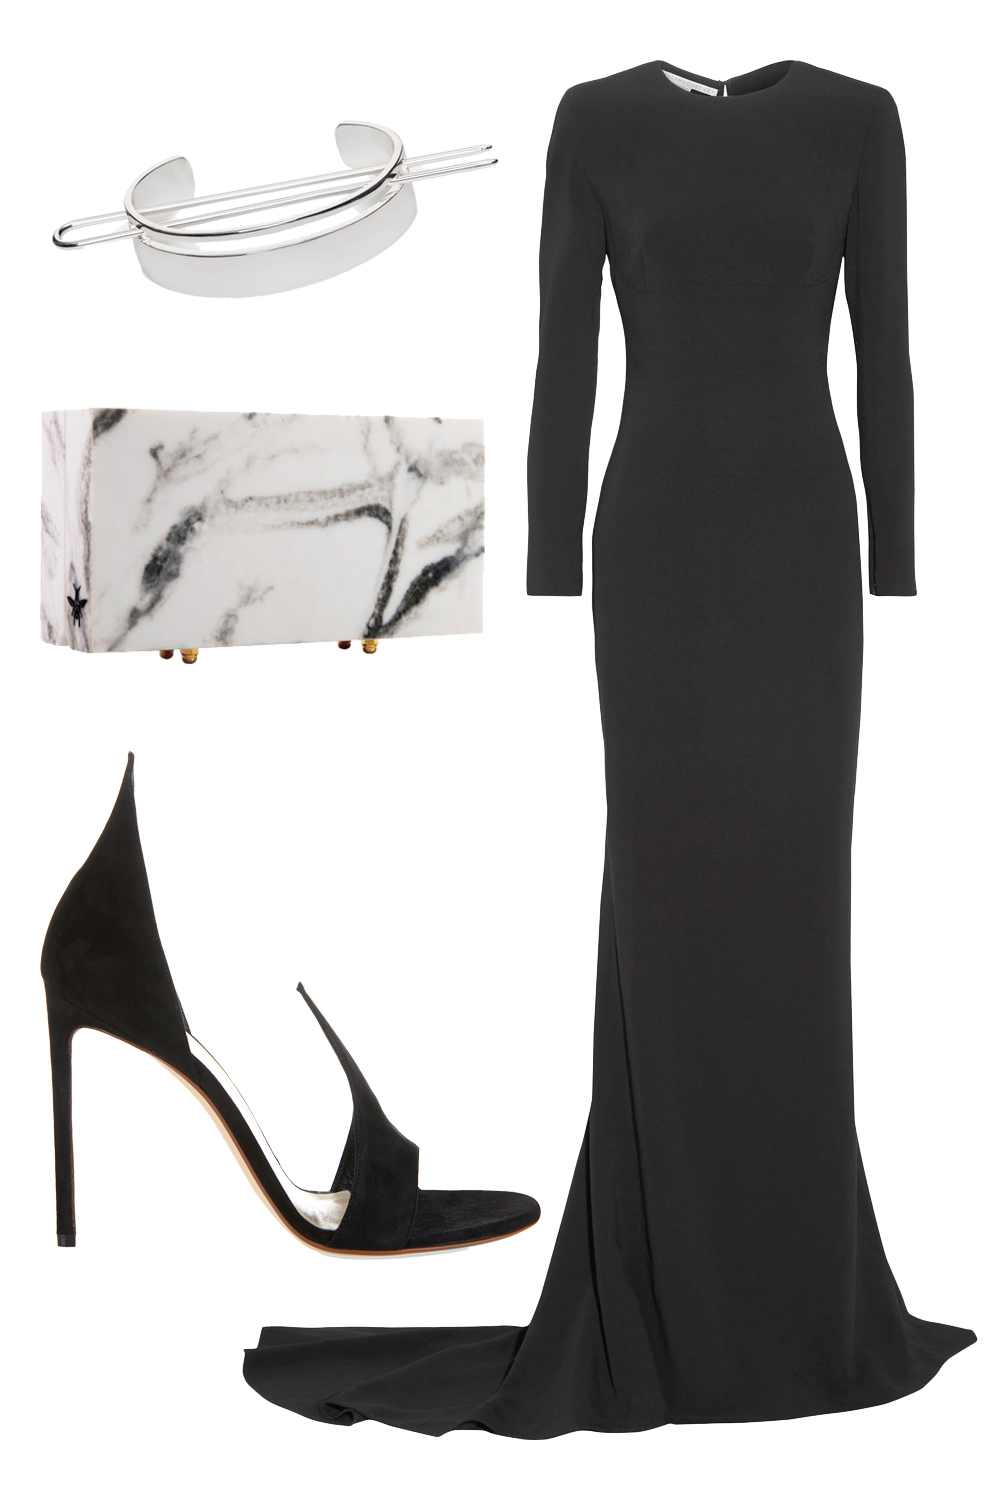 what-to-wear-for-a-winter-wedding-guest-outfit-black-dress-maxi-black-shoe-sandalh-white-bag-clutch-dinner.jpg